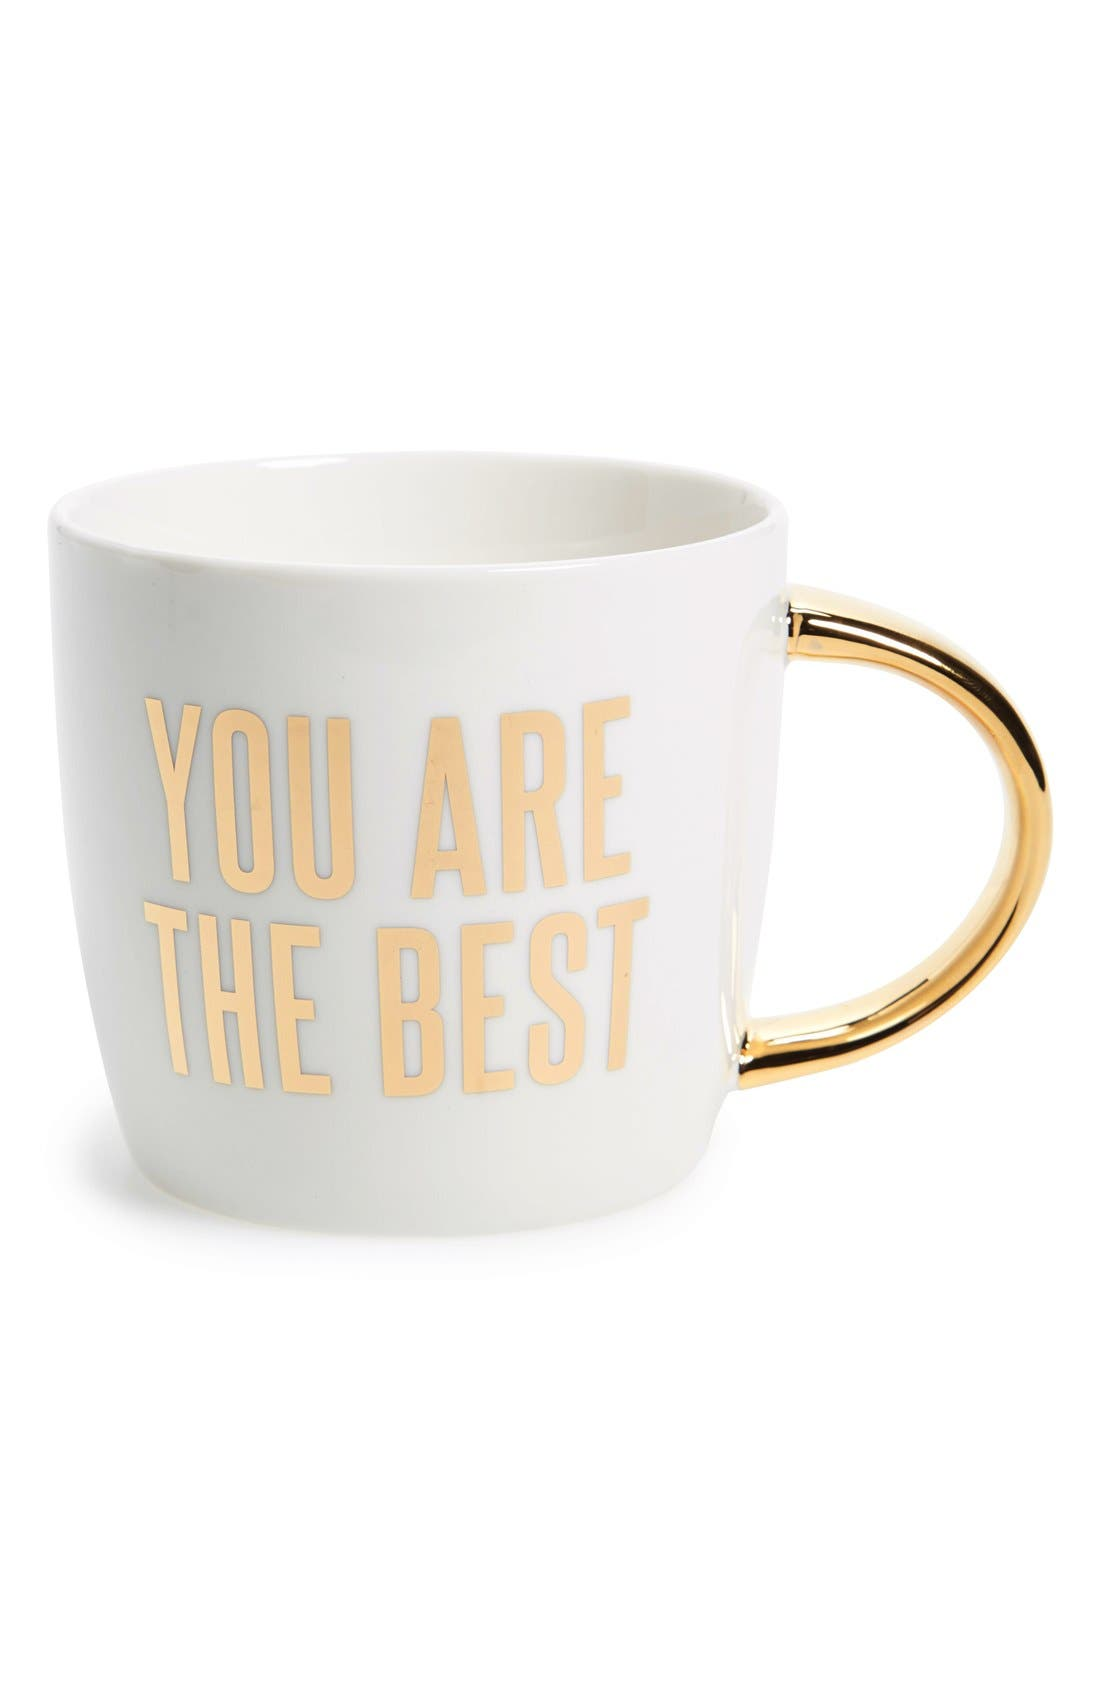 'You Are the Best' Ceramic Mug,                             Main thumbnail 1, color,                             White